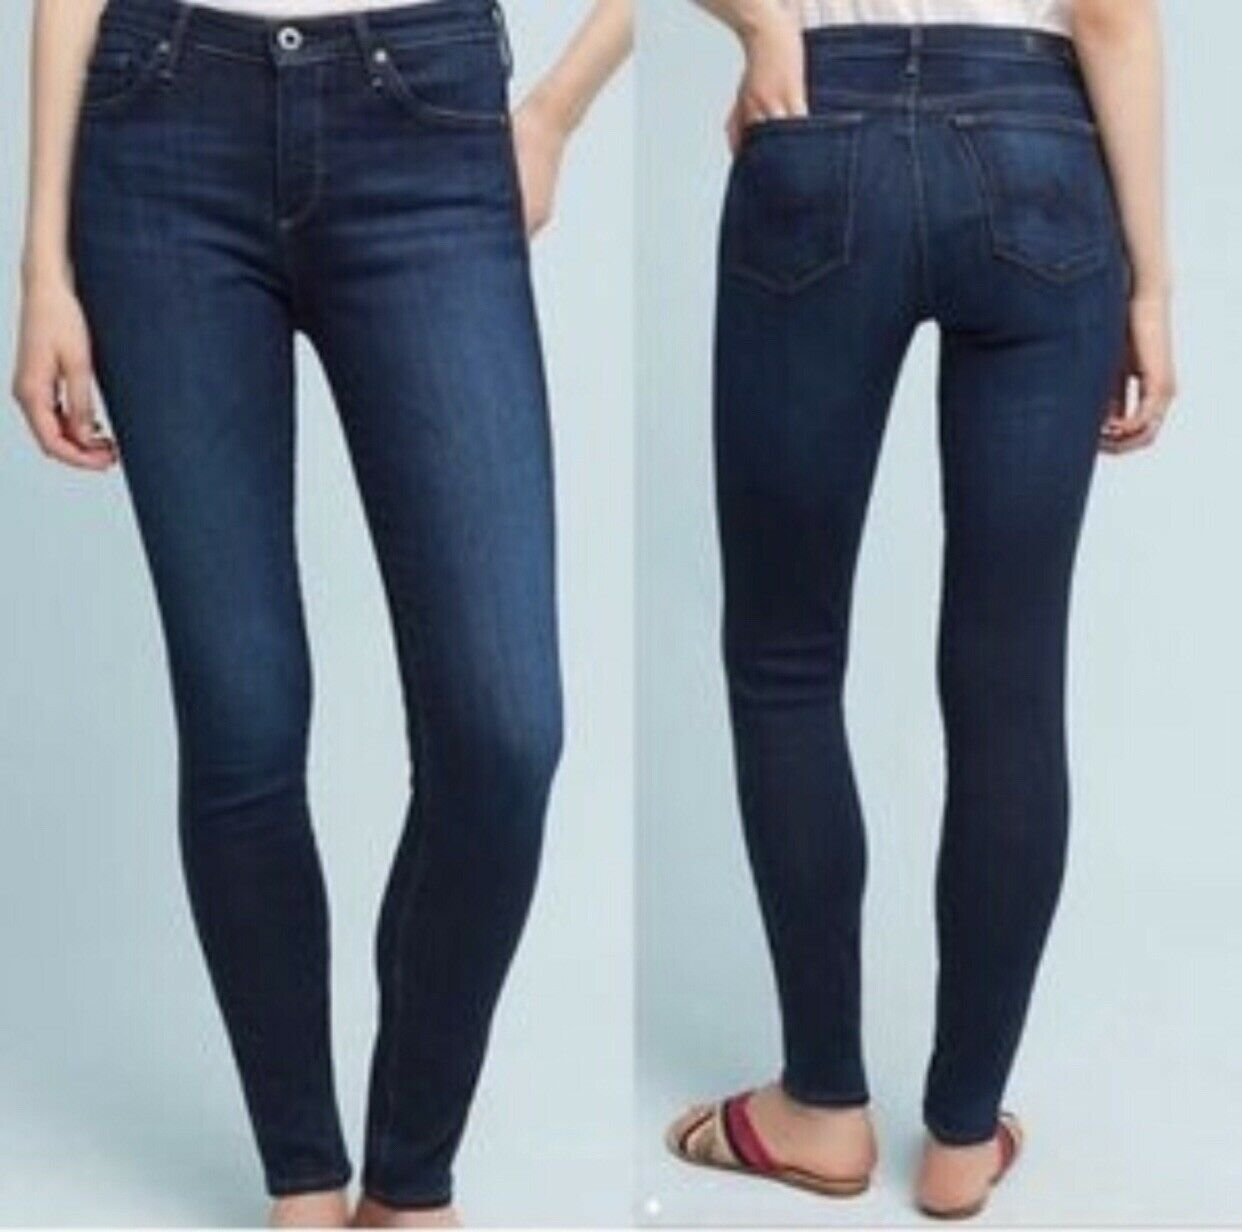 Anthropologie AG Adriano goldschmied The Abbey Super Skinny High Rise Jean Sz 27